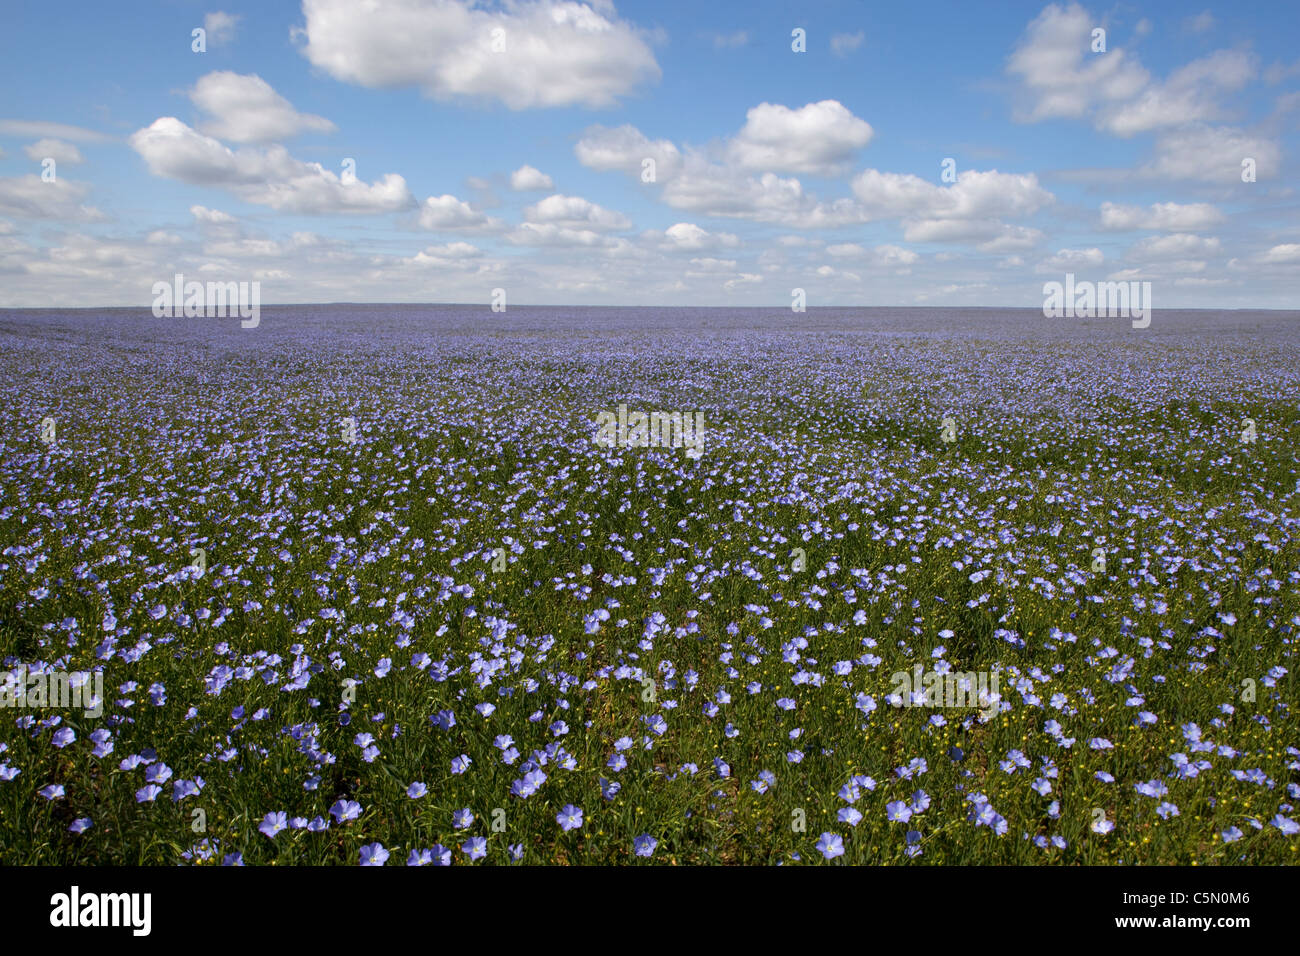 Field of linseed oil (flax) Oxfordshire, England - Stock Image